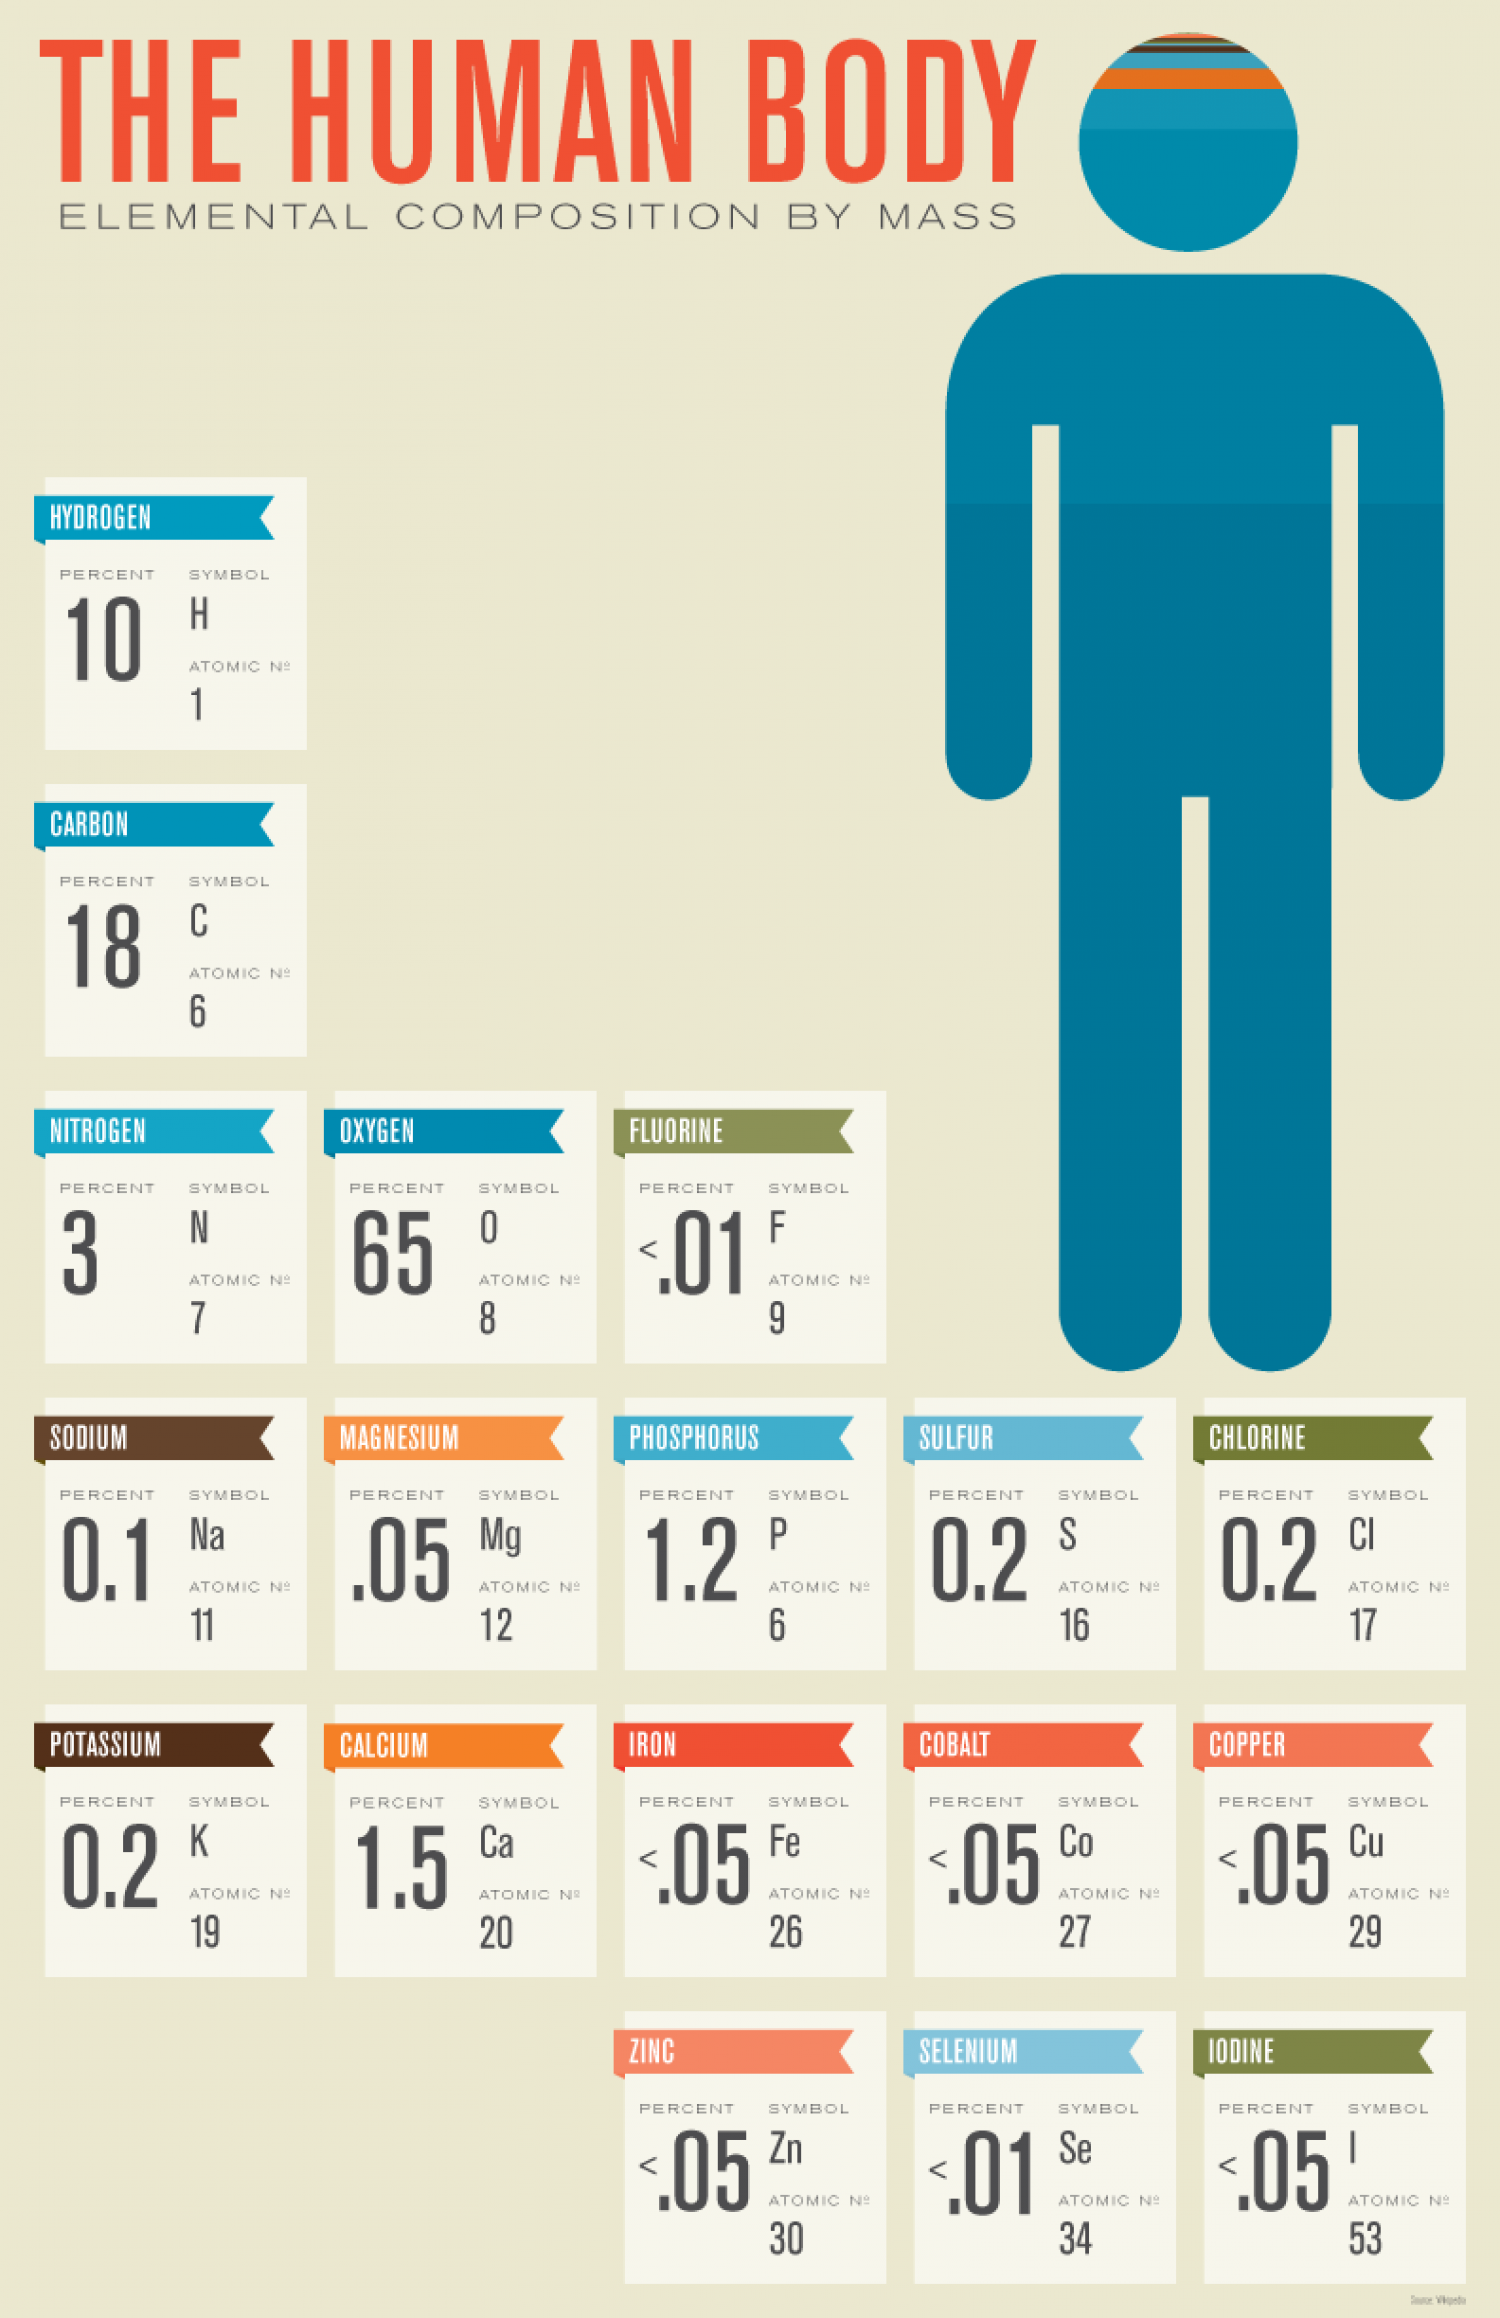 Human Body Composition Infographic